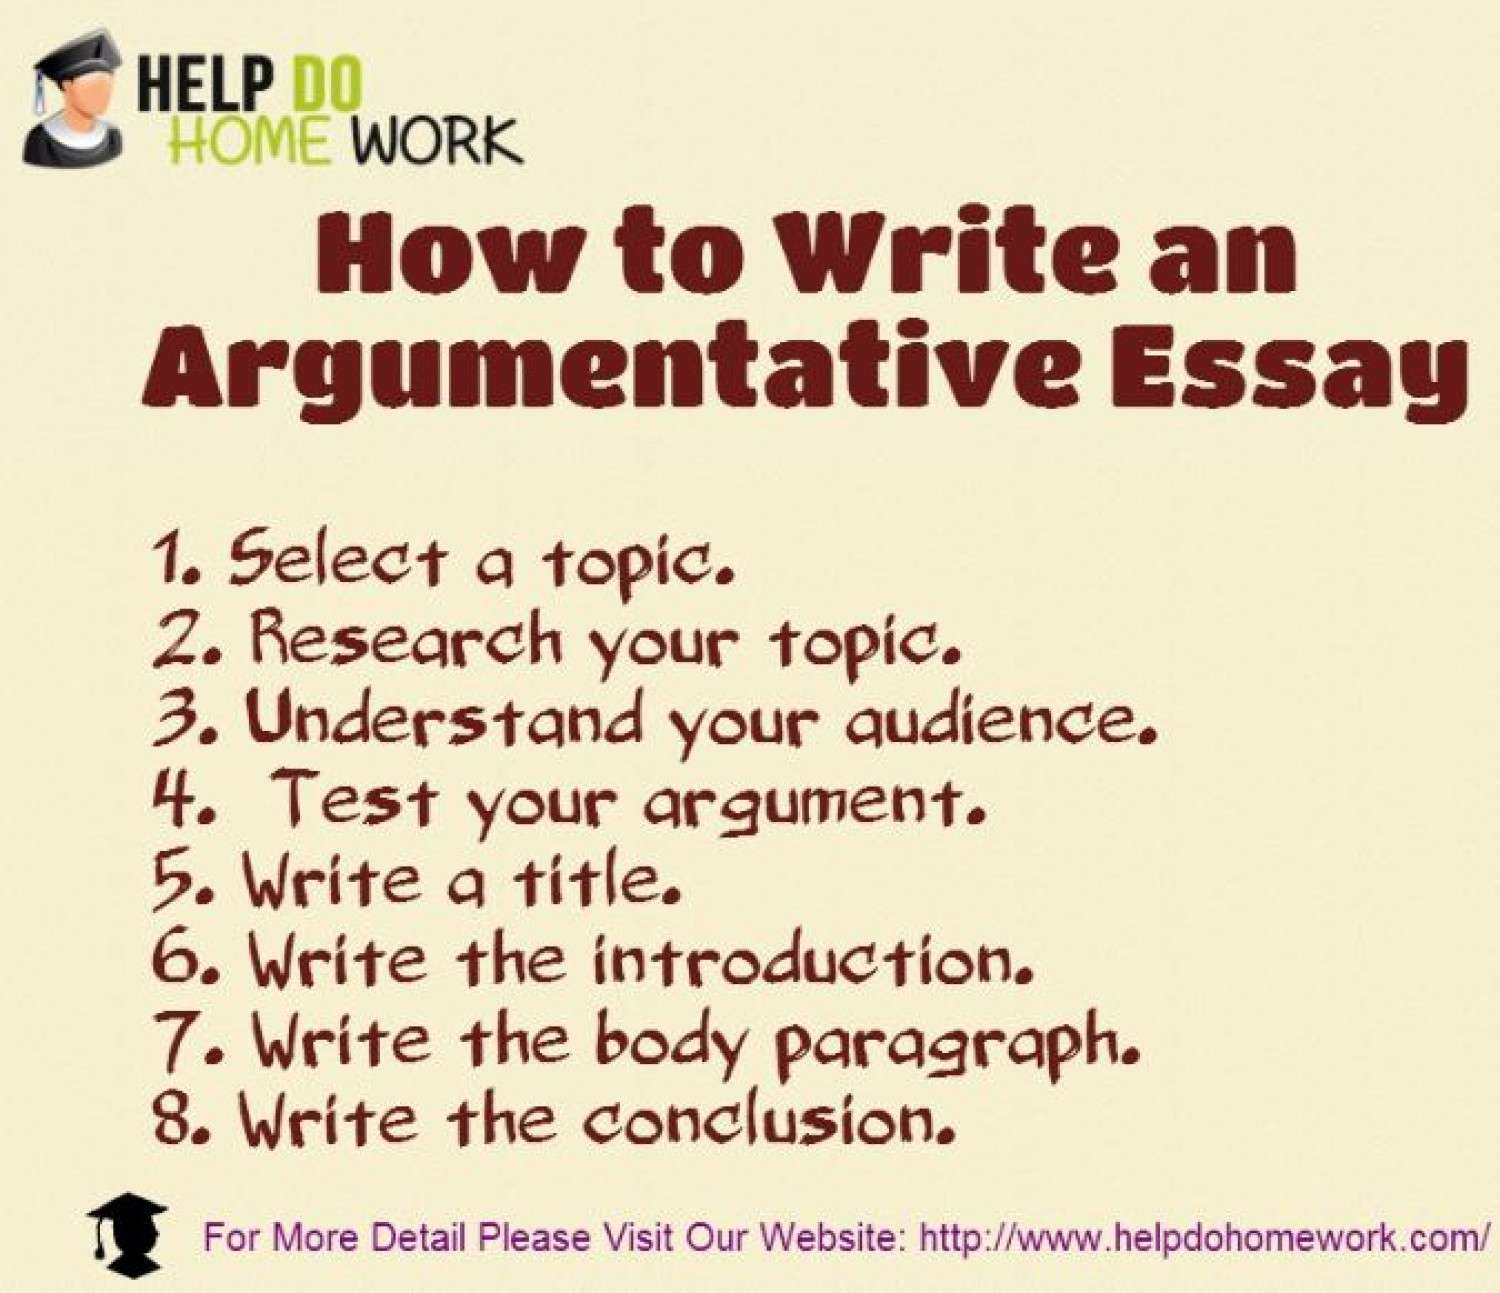 writing techniques for argumentative essays Writing conclusions to argumentative essays conclusions are just as important as introductions the  back to writing introductions to argumentative essays .